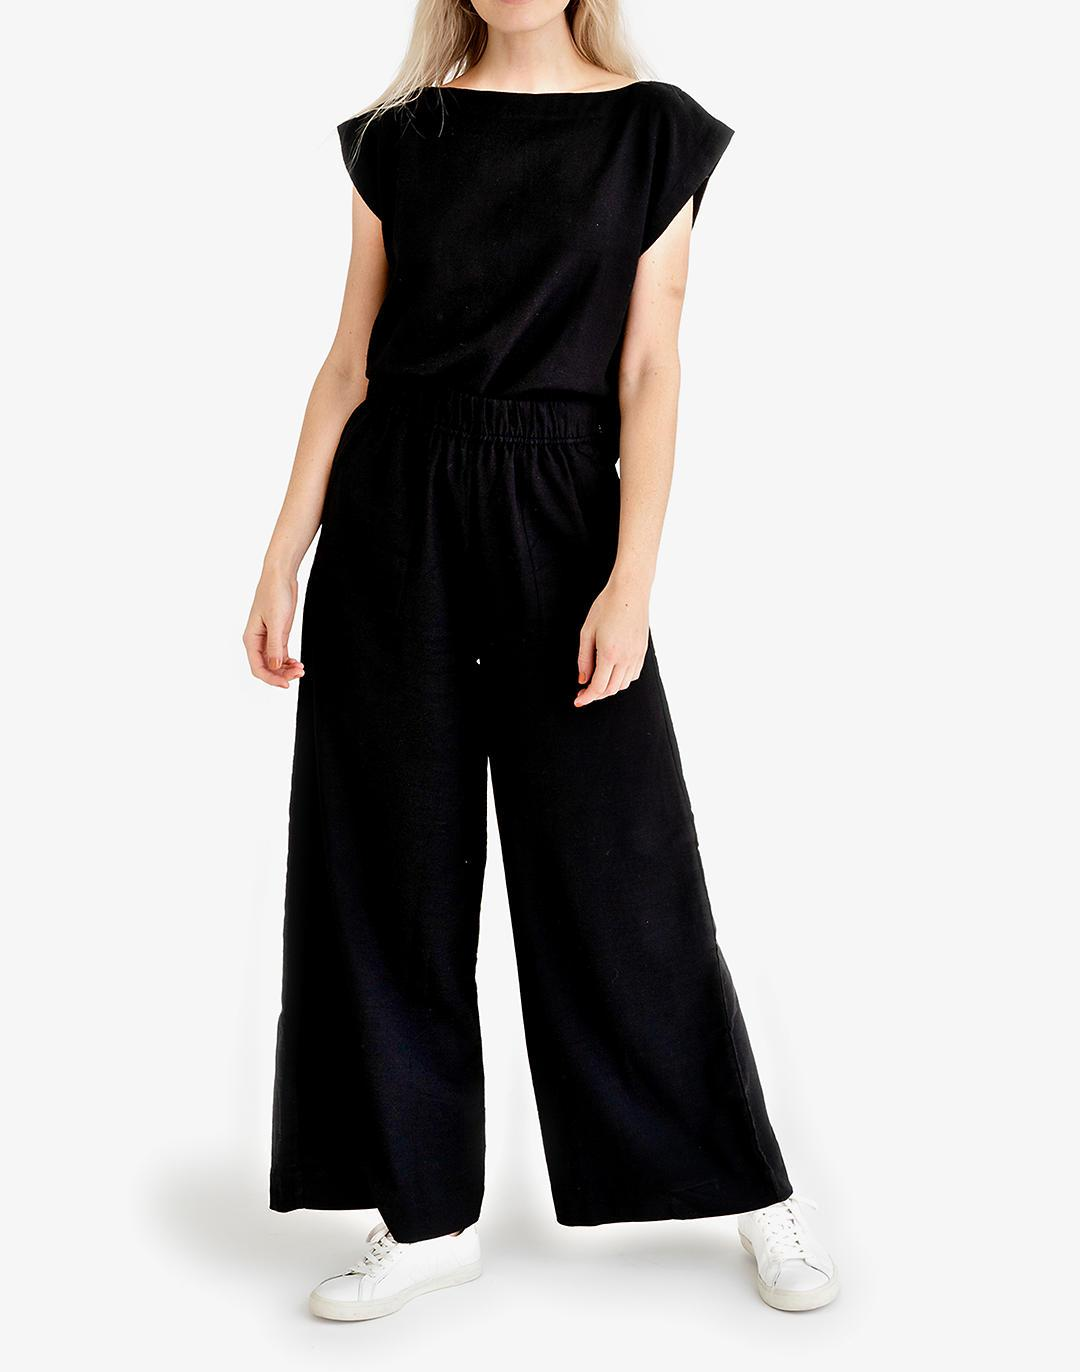 LAUDE the Label Everyday Top